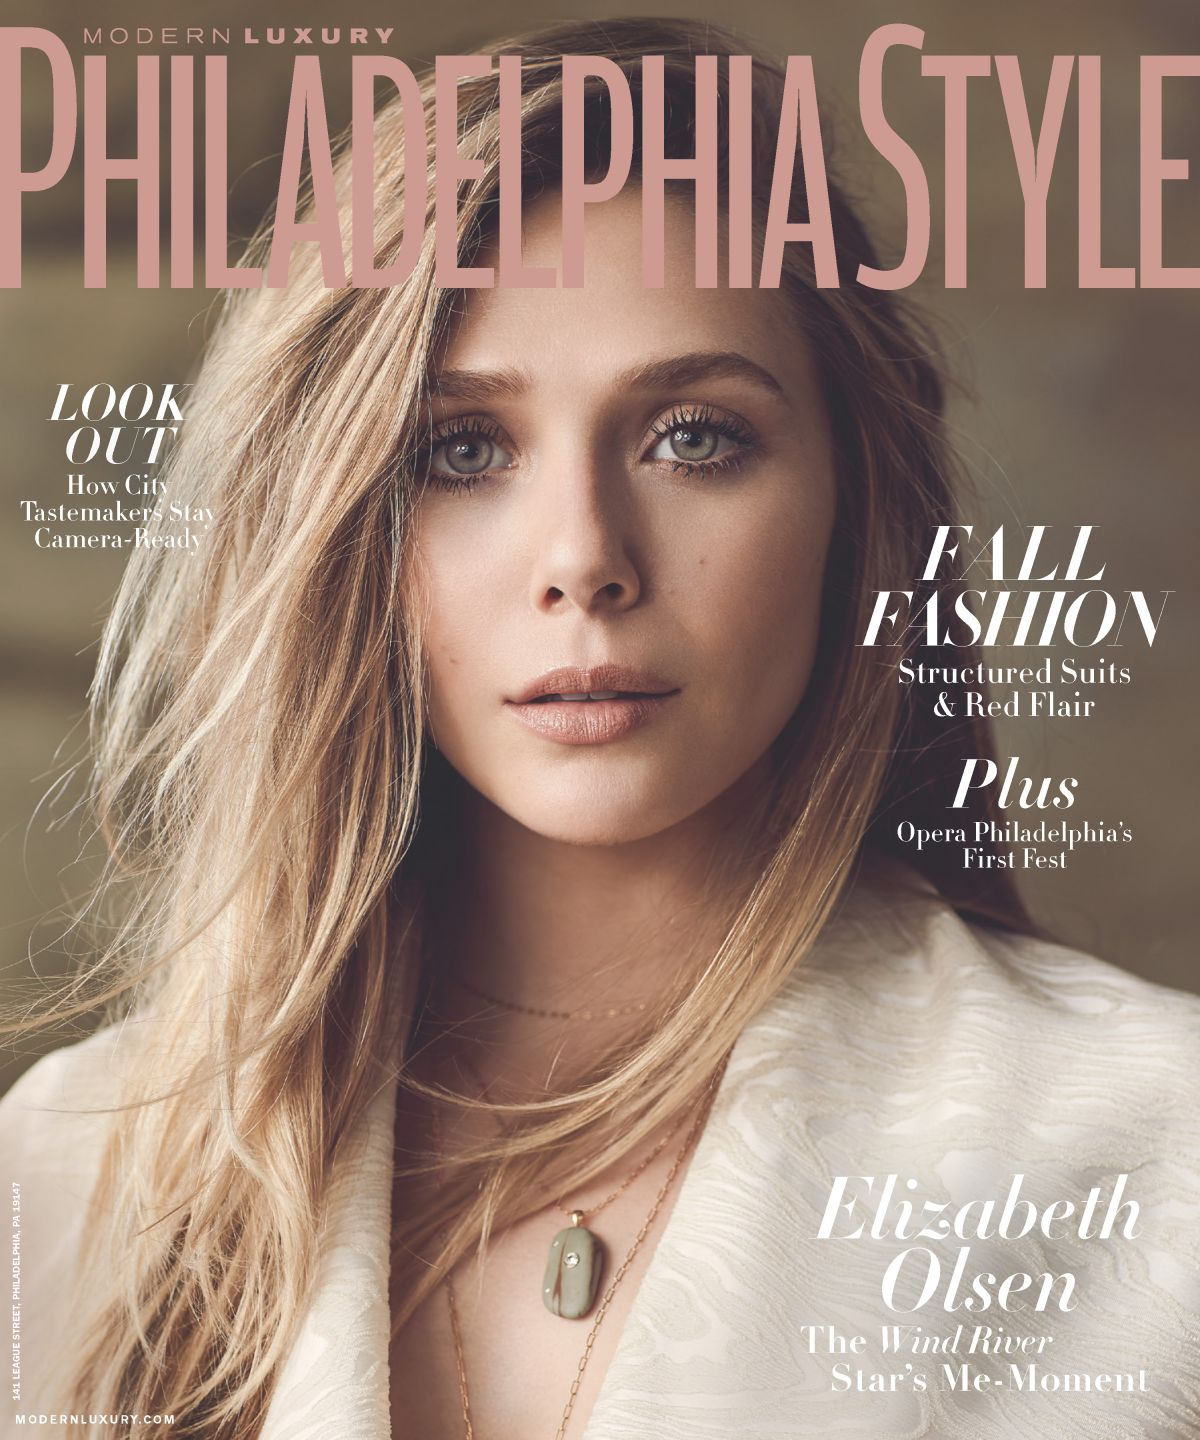 ELIZABETH OLSEN in Philadelphia Style Magazine, Fall 2017